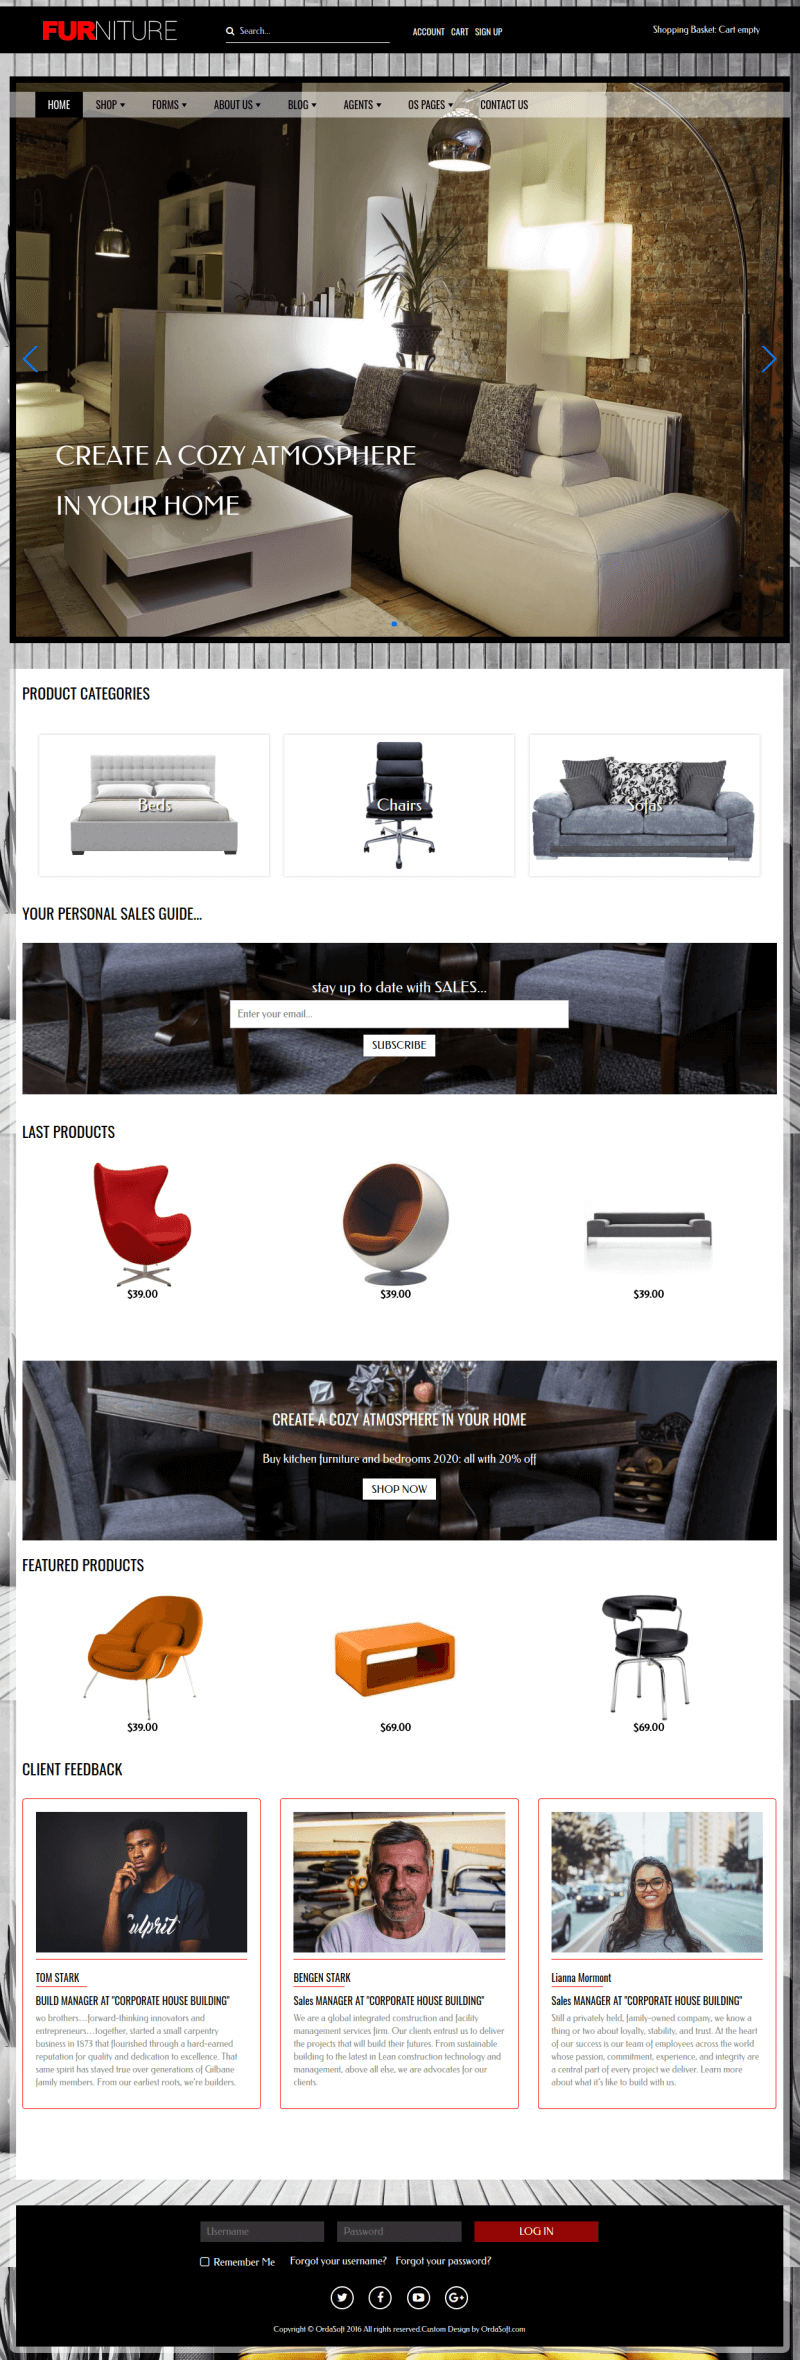 Furniture - Virtuemart Joomla Template